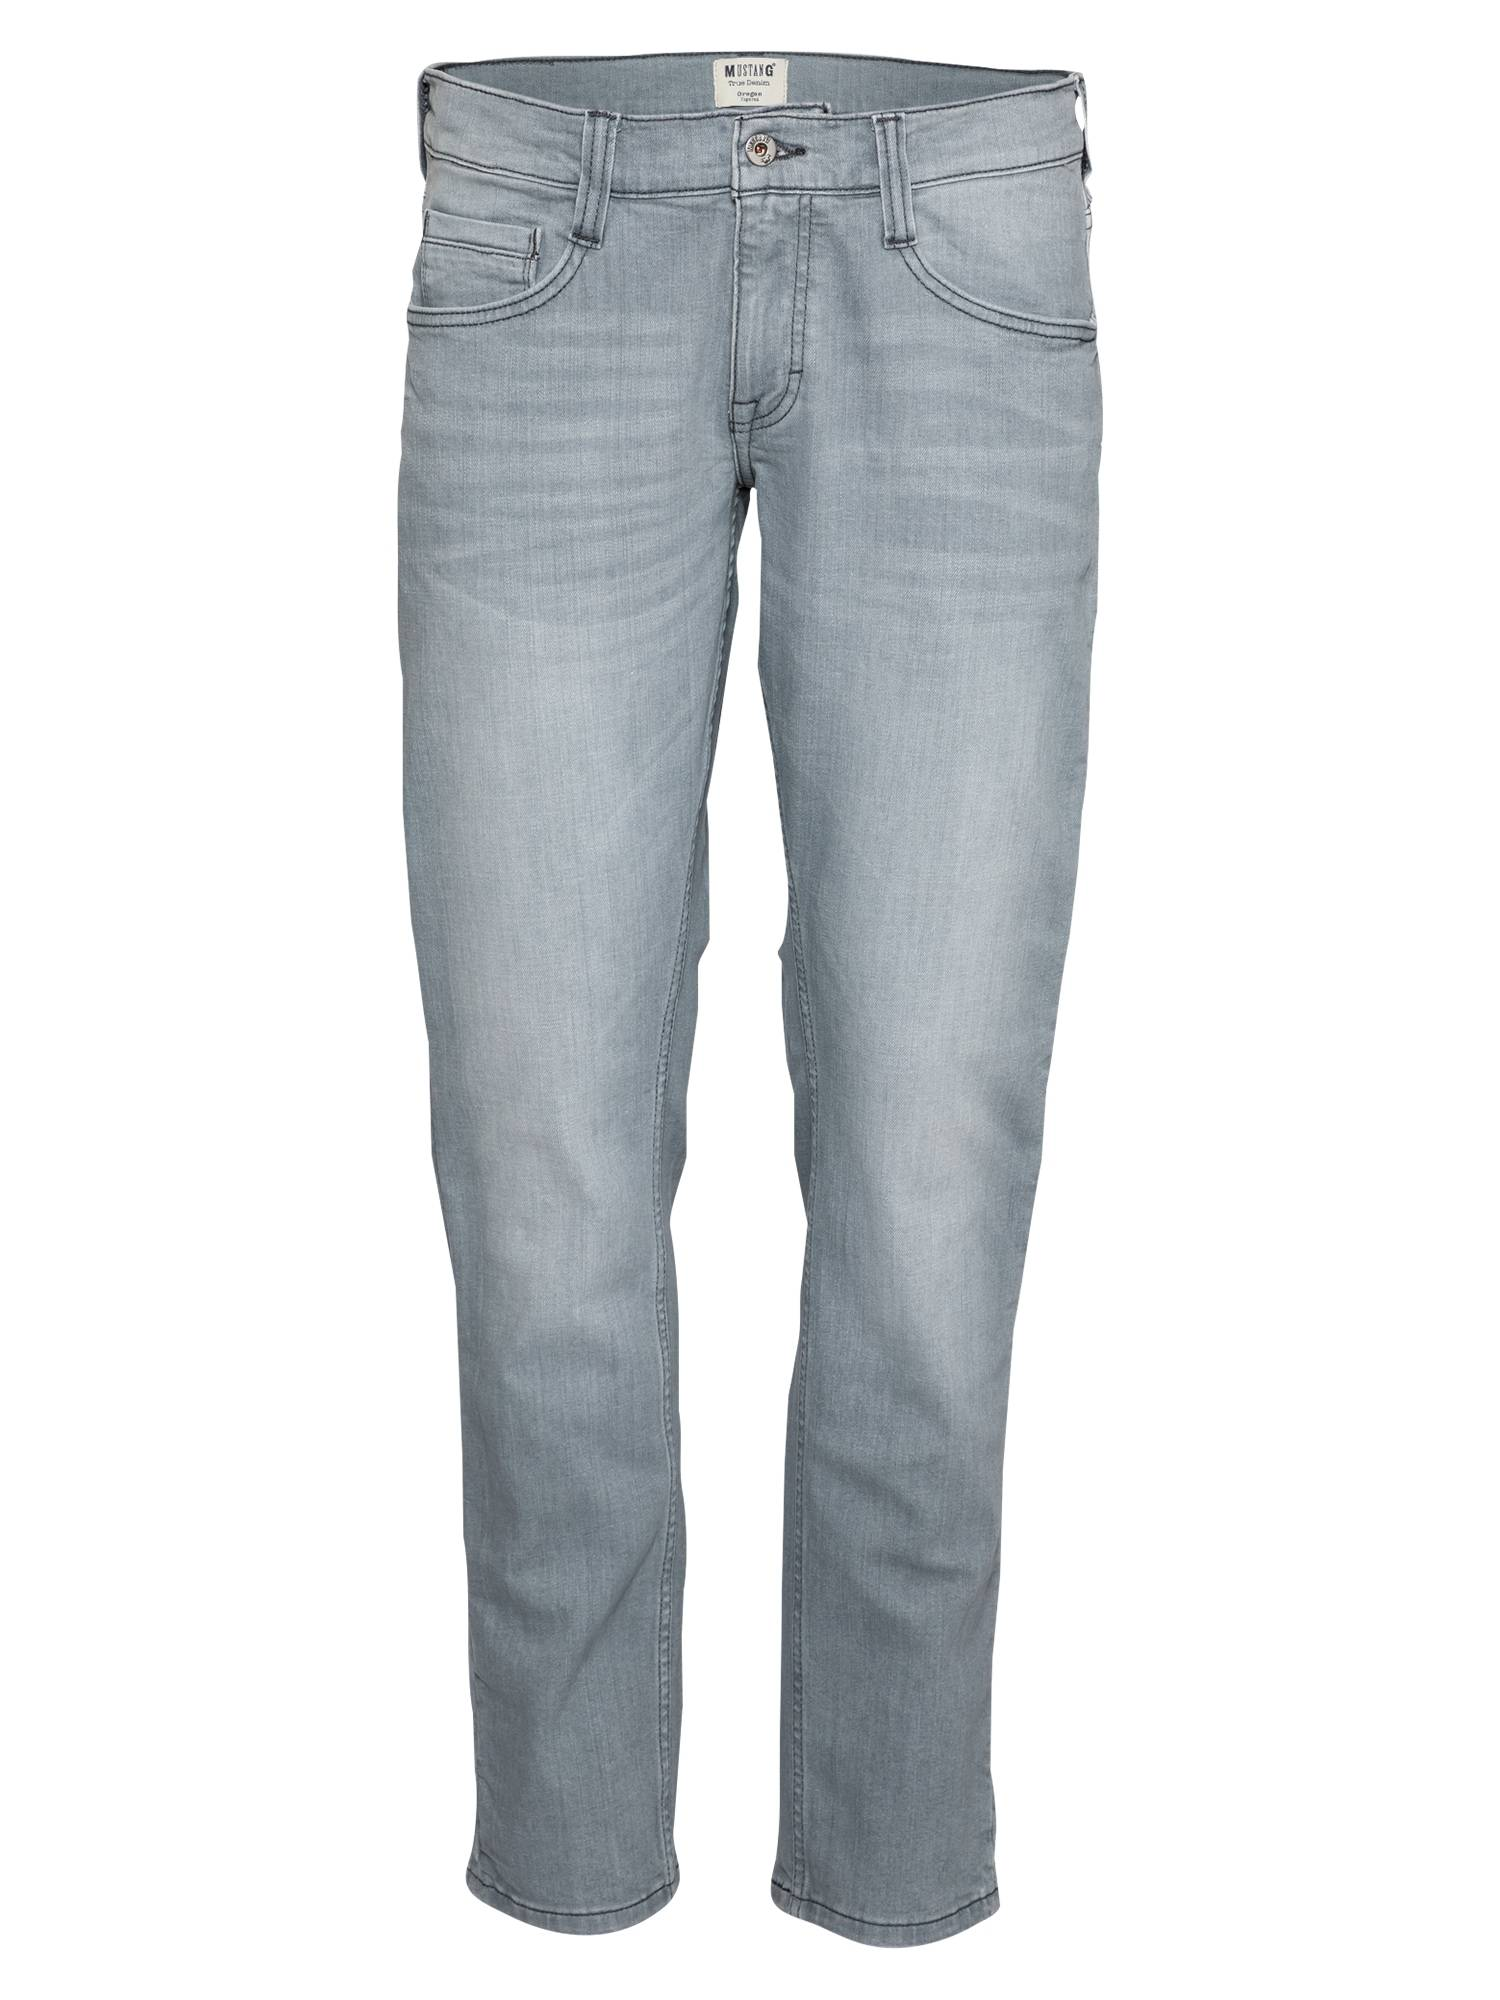 MUSTANG Jean 'Oregon'  - Gris - Taille: 35/32 - male